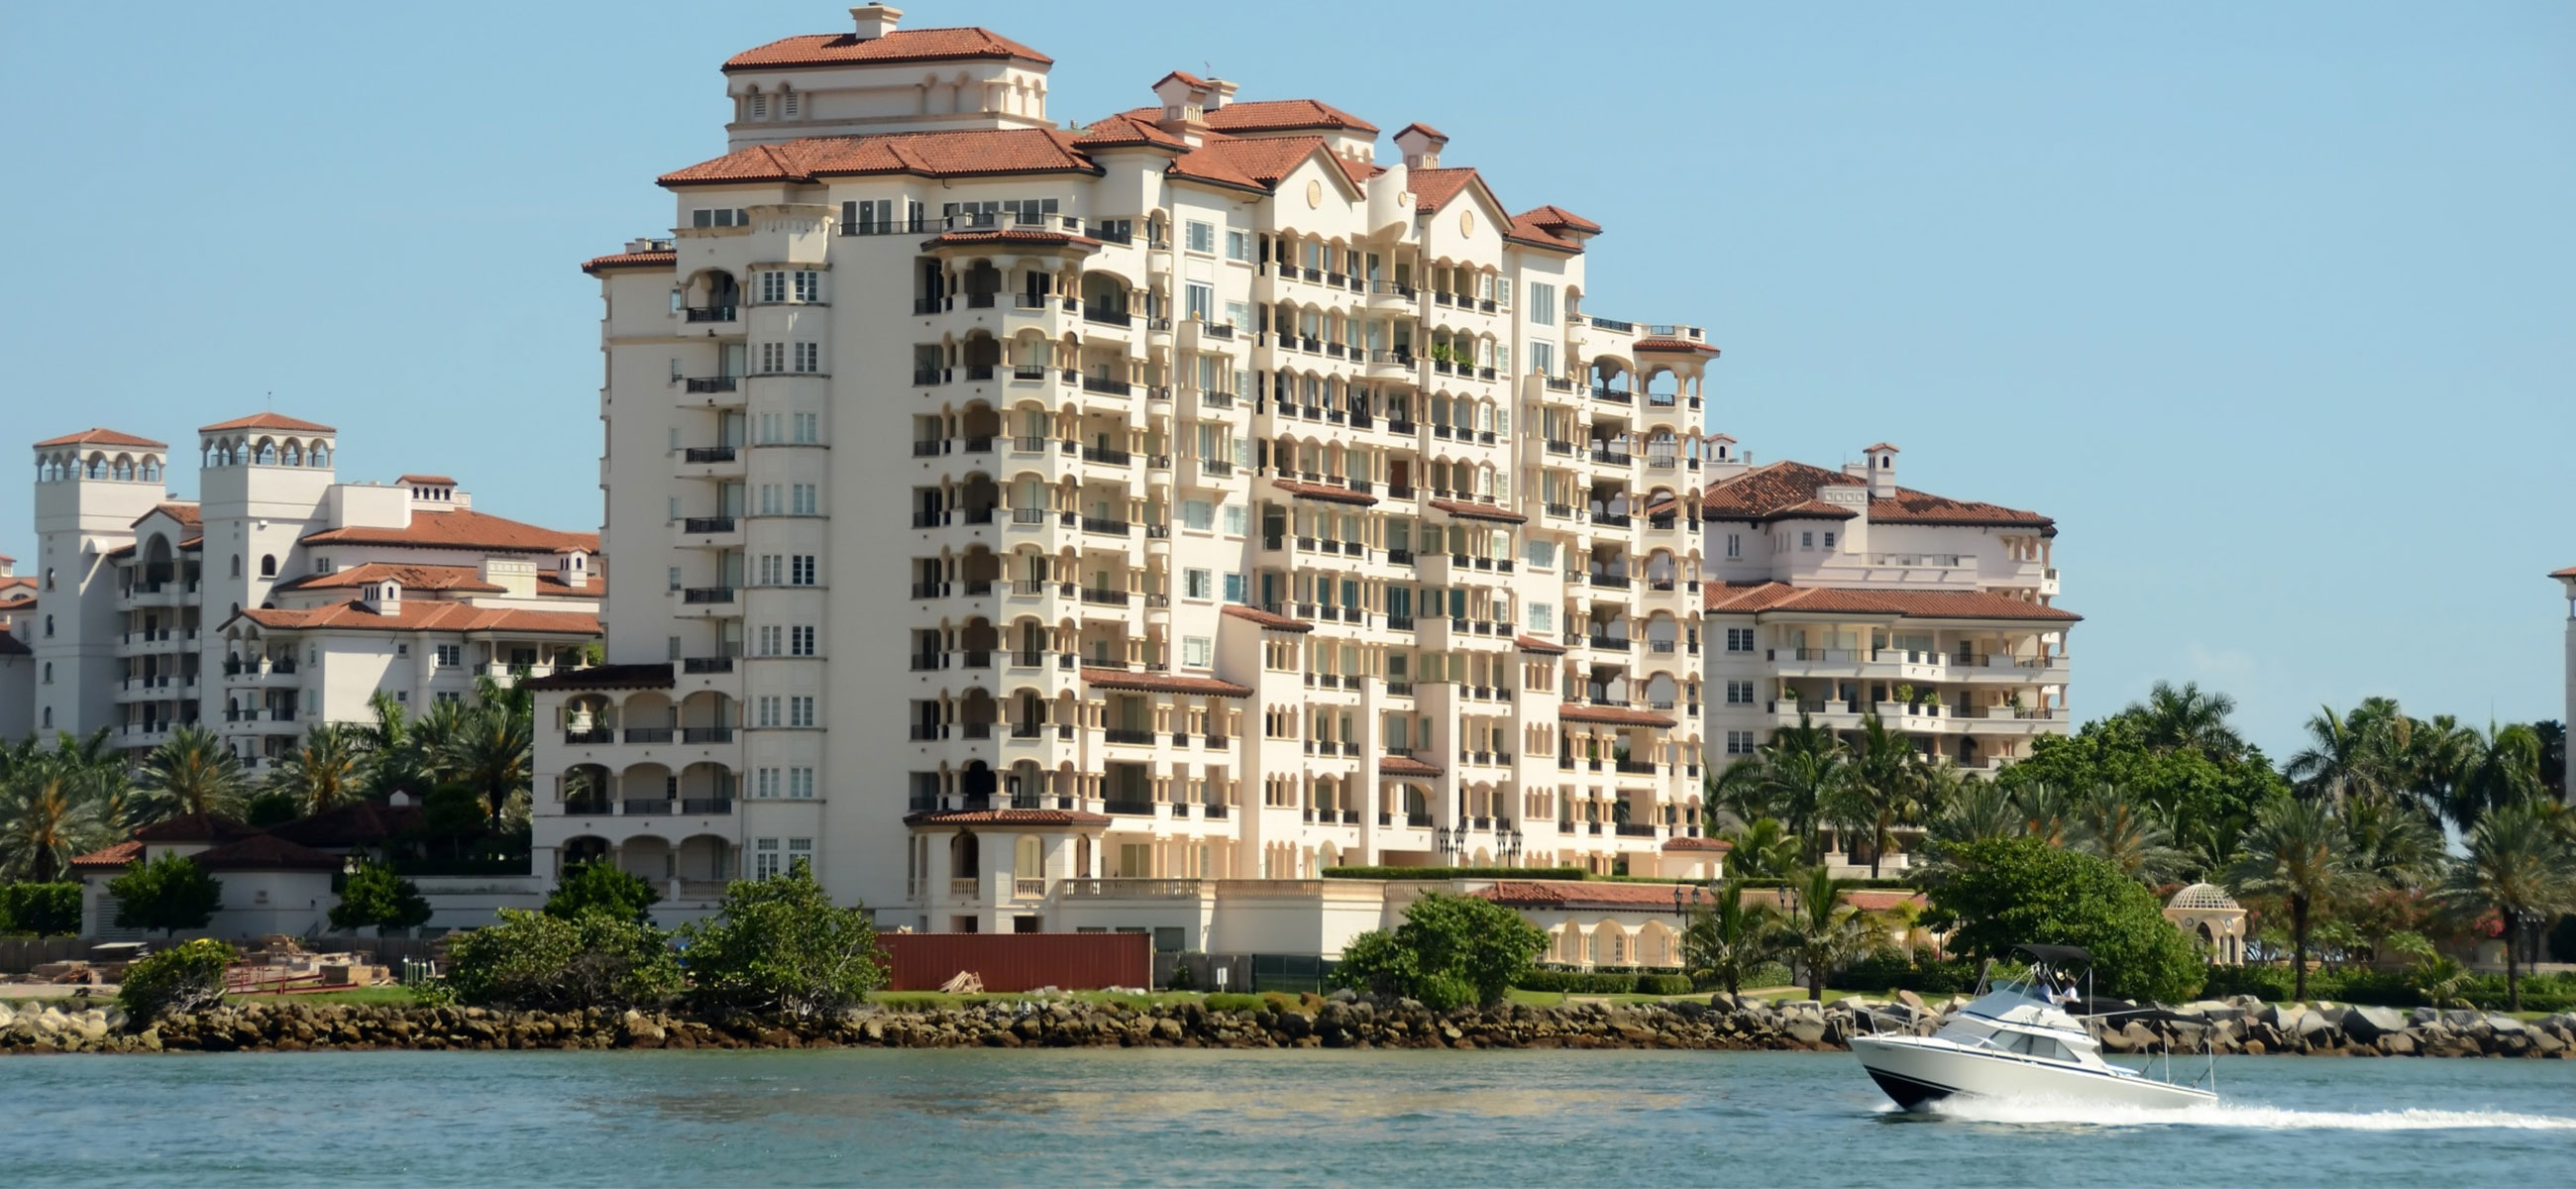 Longwood Fl Condo Insurance Agents Express Insurance